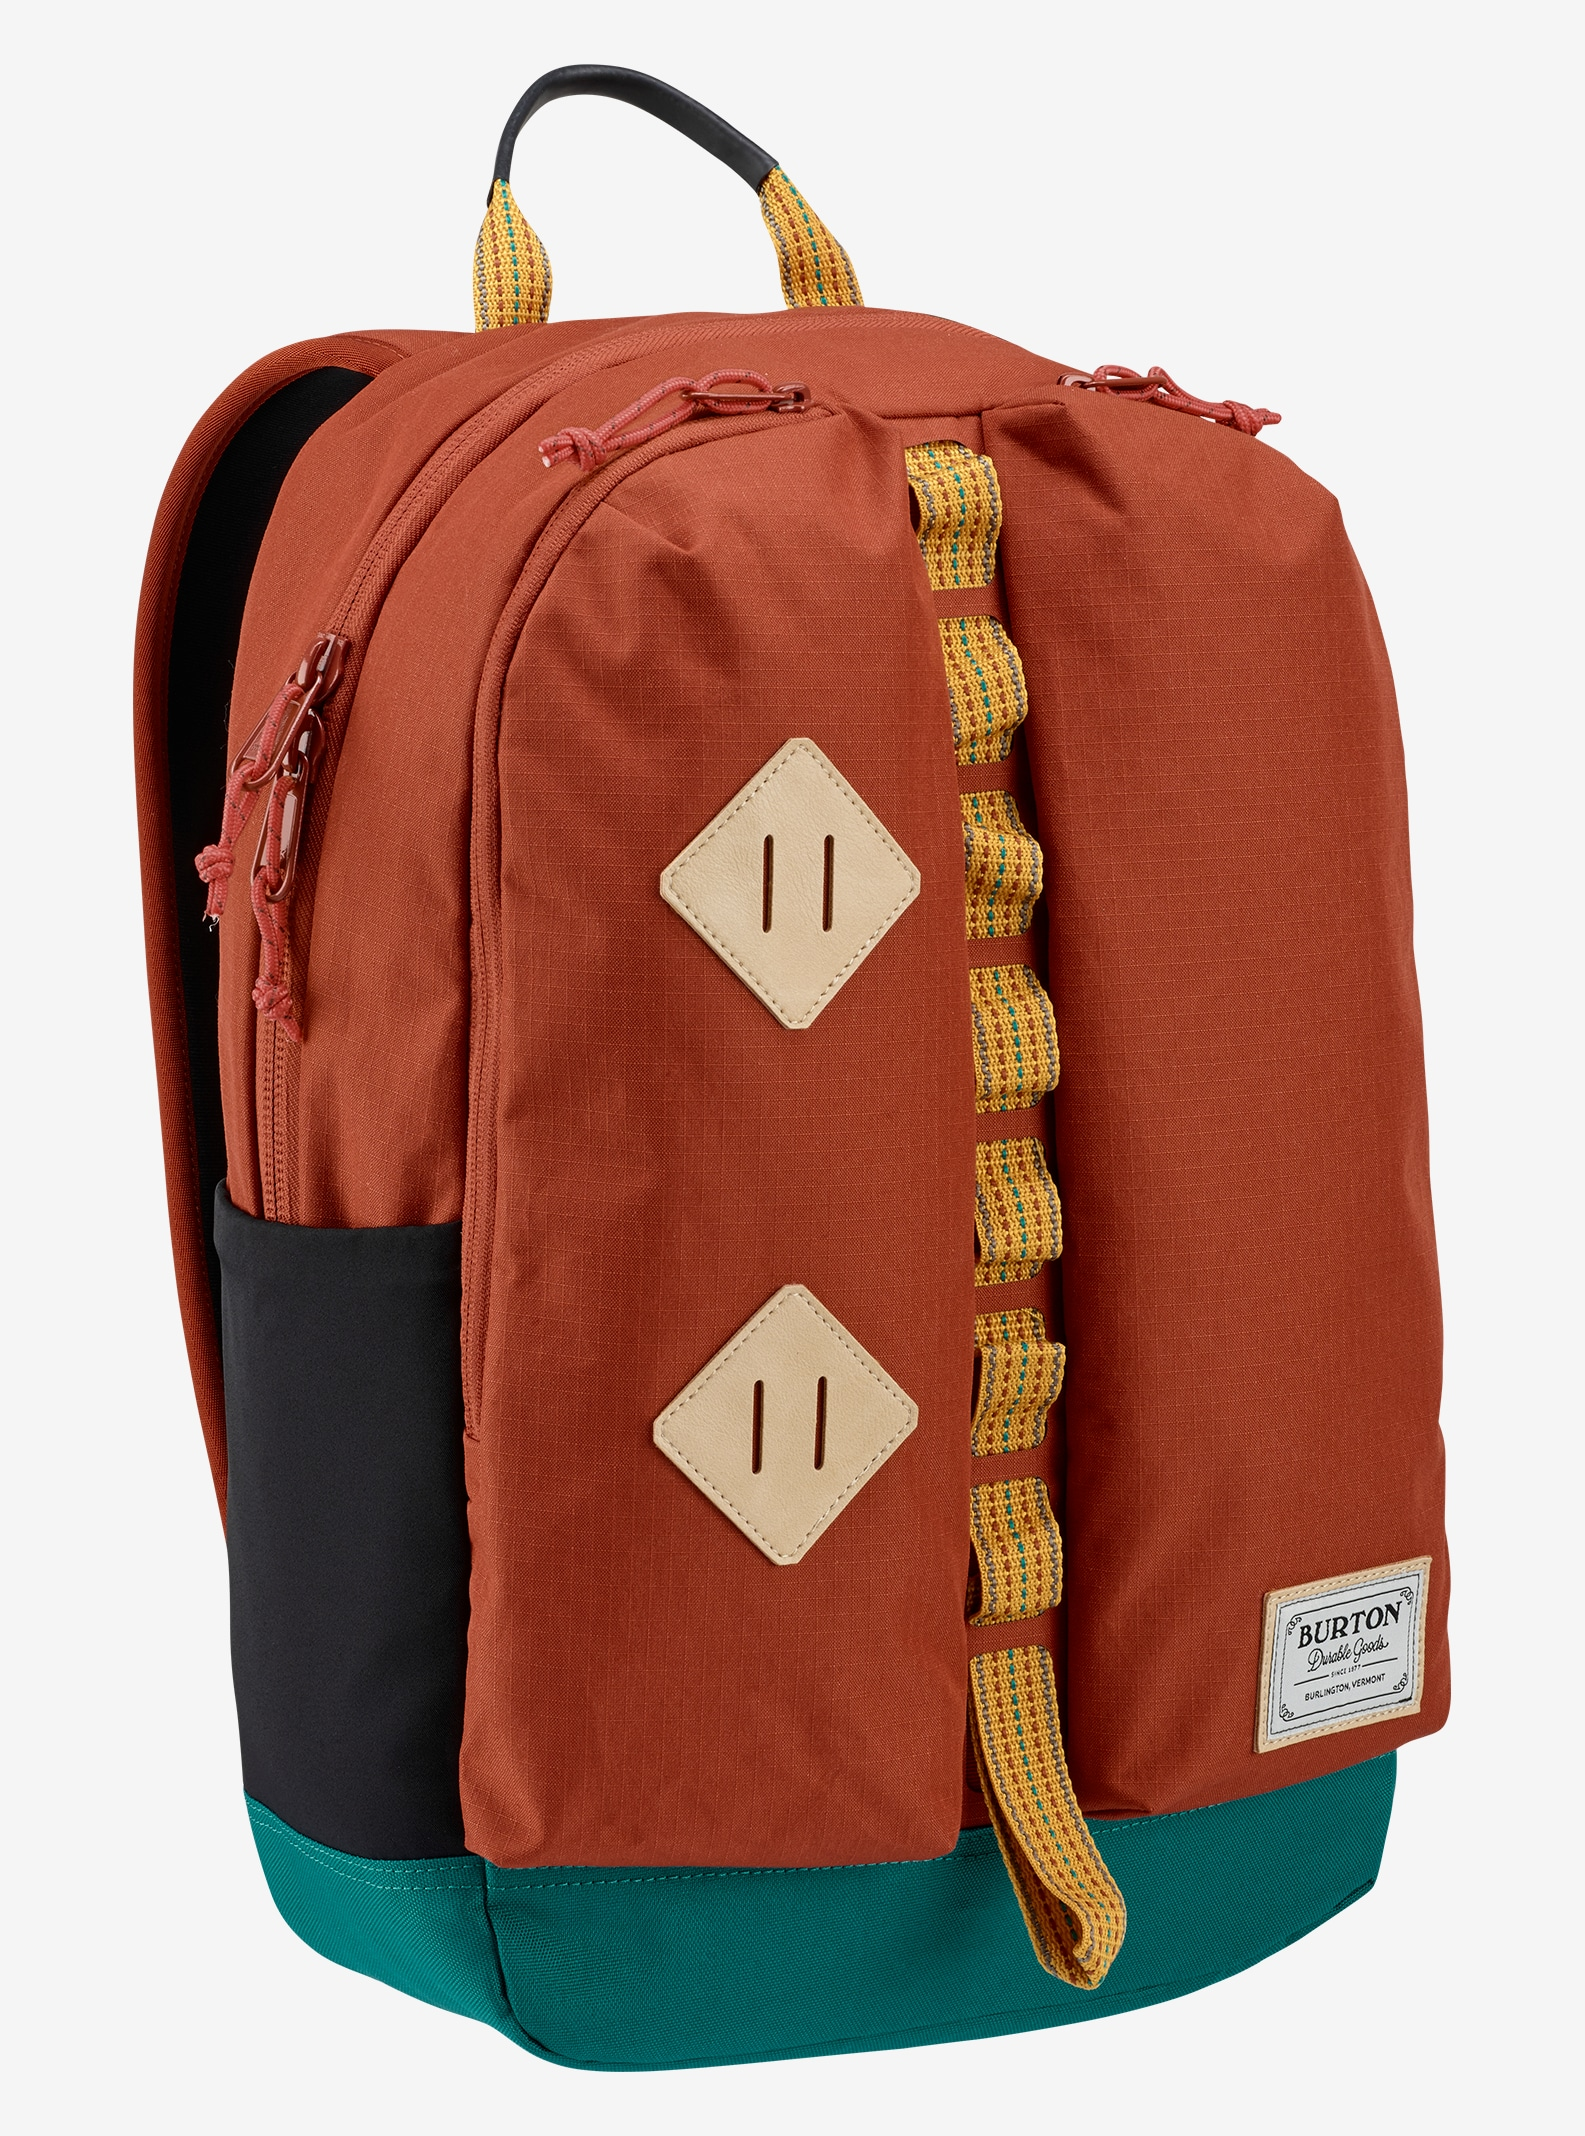 Burton Homestead Backpack shown in Tandori Ripstop